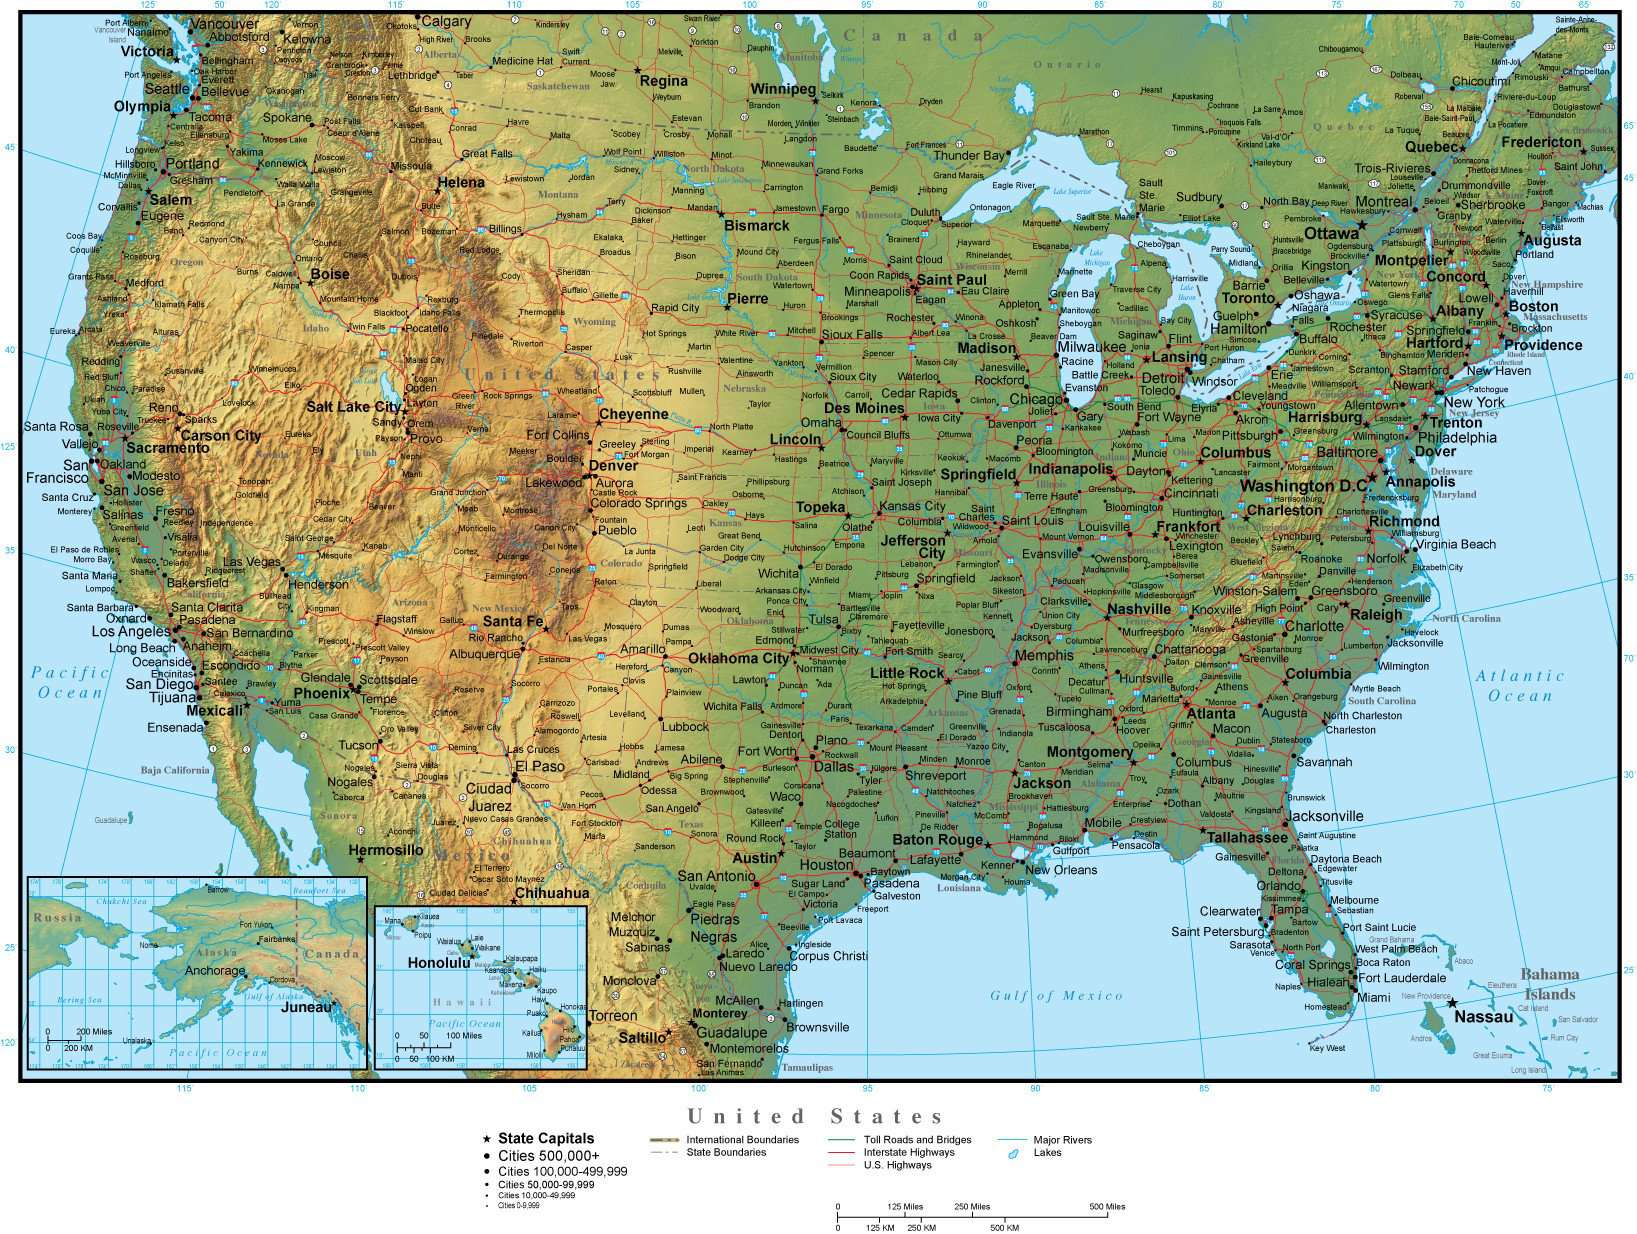 Geography Blog US Maps Time Zones World Map Time Zones Wallpaper - Indiana on a us map